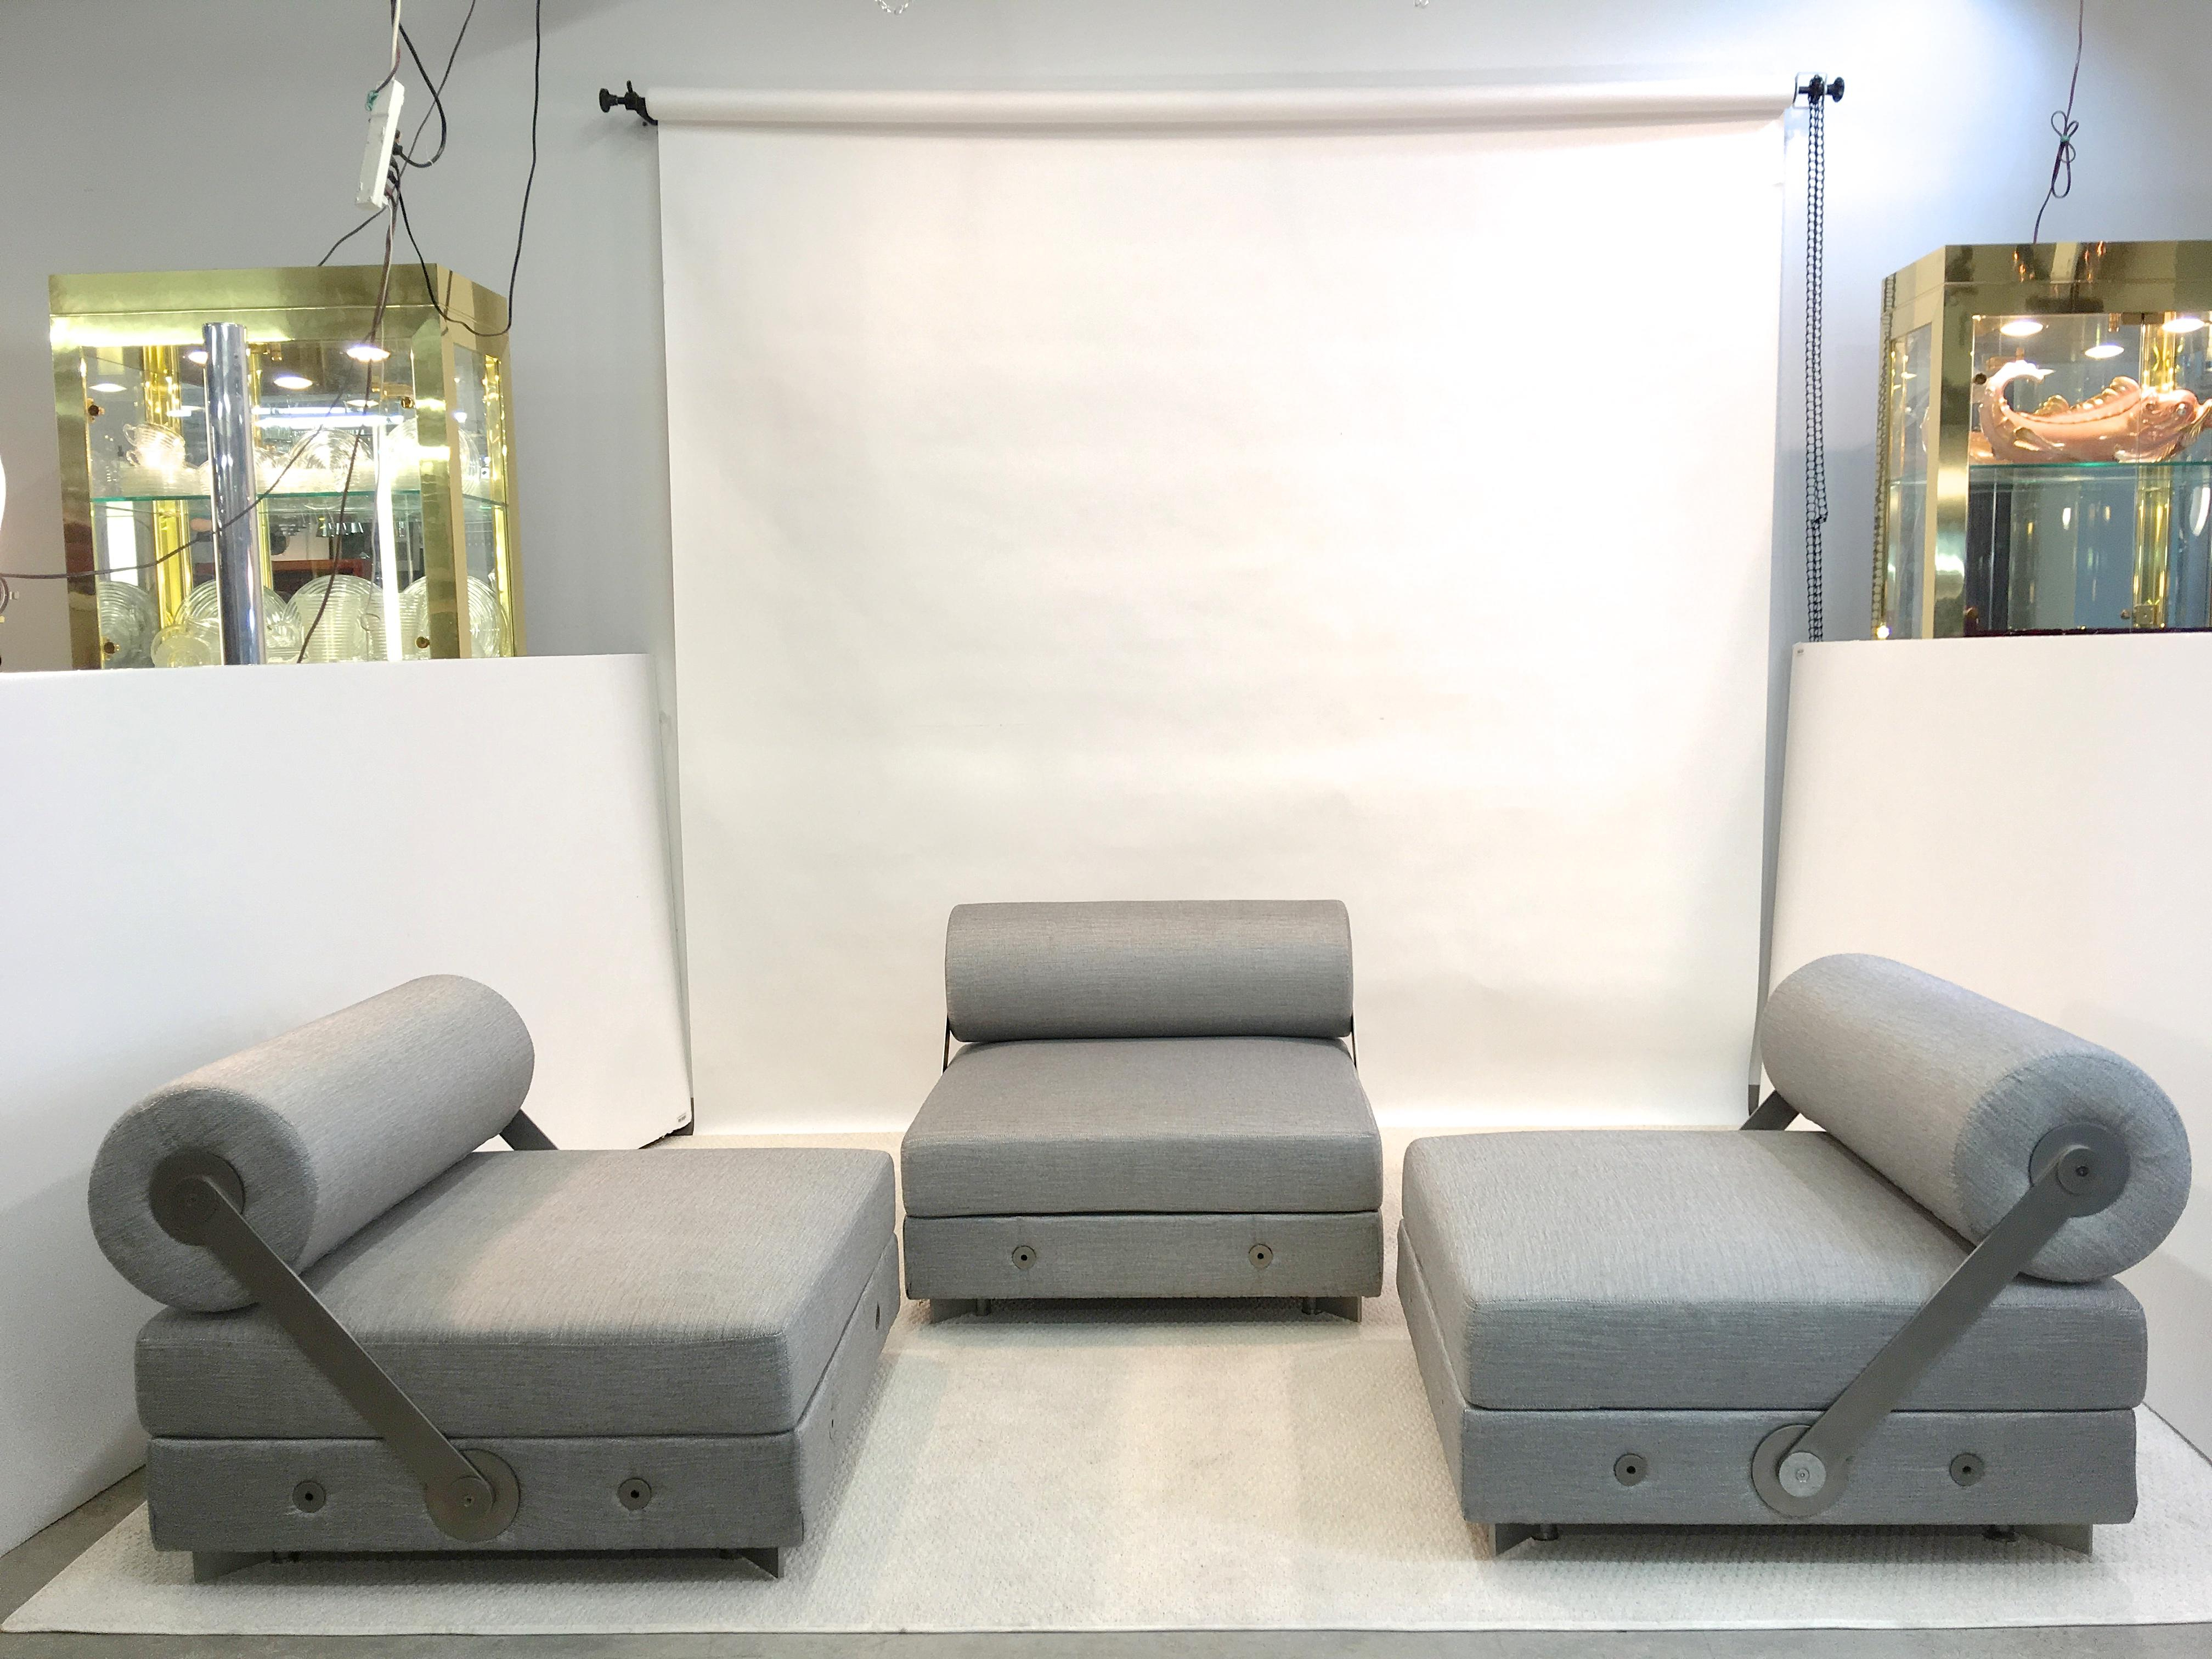 "Latest Todo Modo"" Modular Seating With Reversible Backrests For Sale At 1Stdibs Inside London Optical Reversible Sofa Chaise Sectionals (View 7 of 20)"